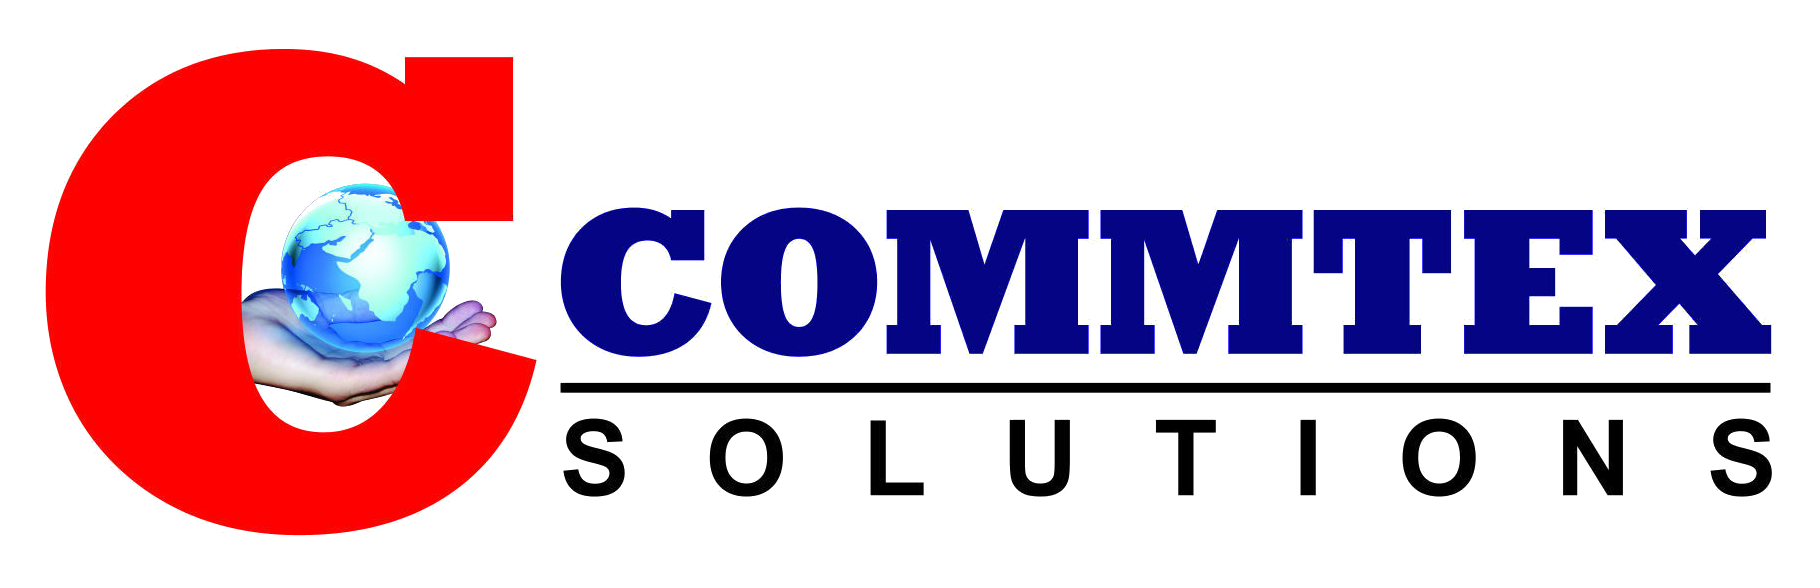 Commtex Solutions Pvt. Ltd - Consulting company logo